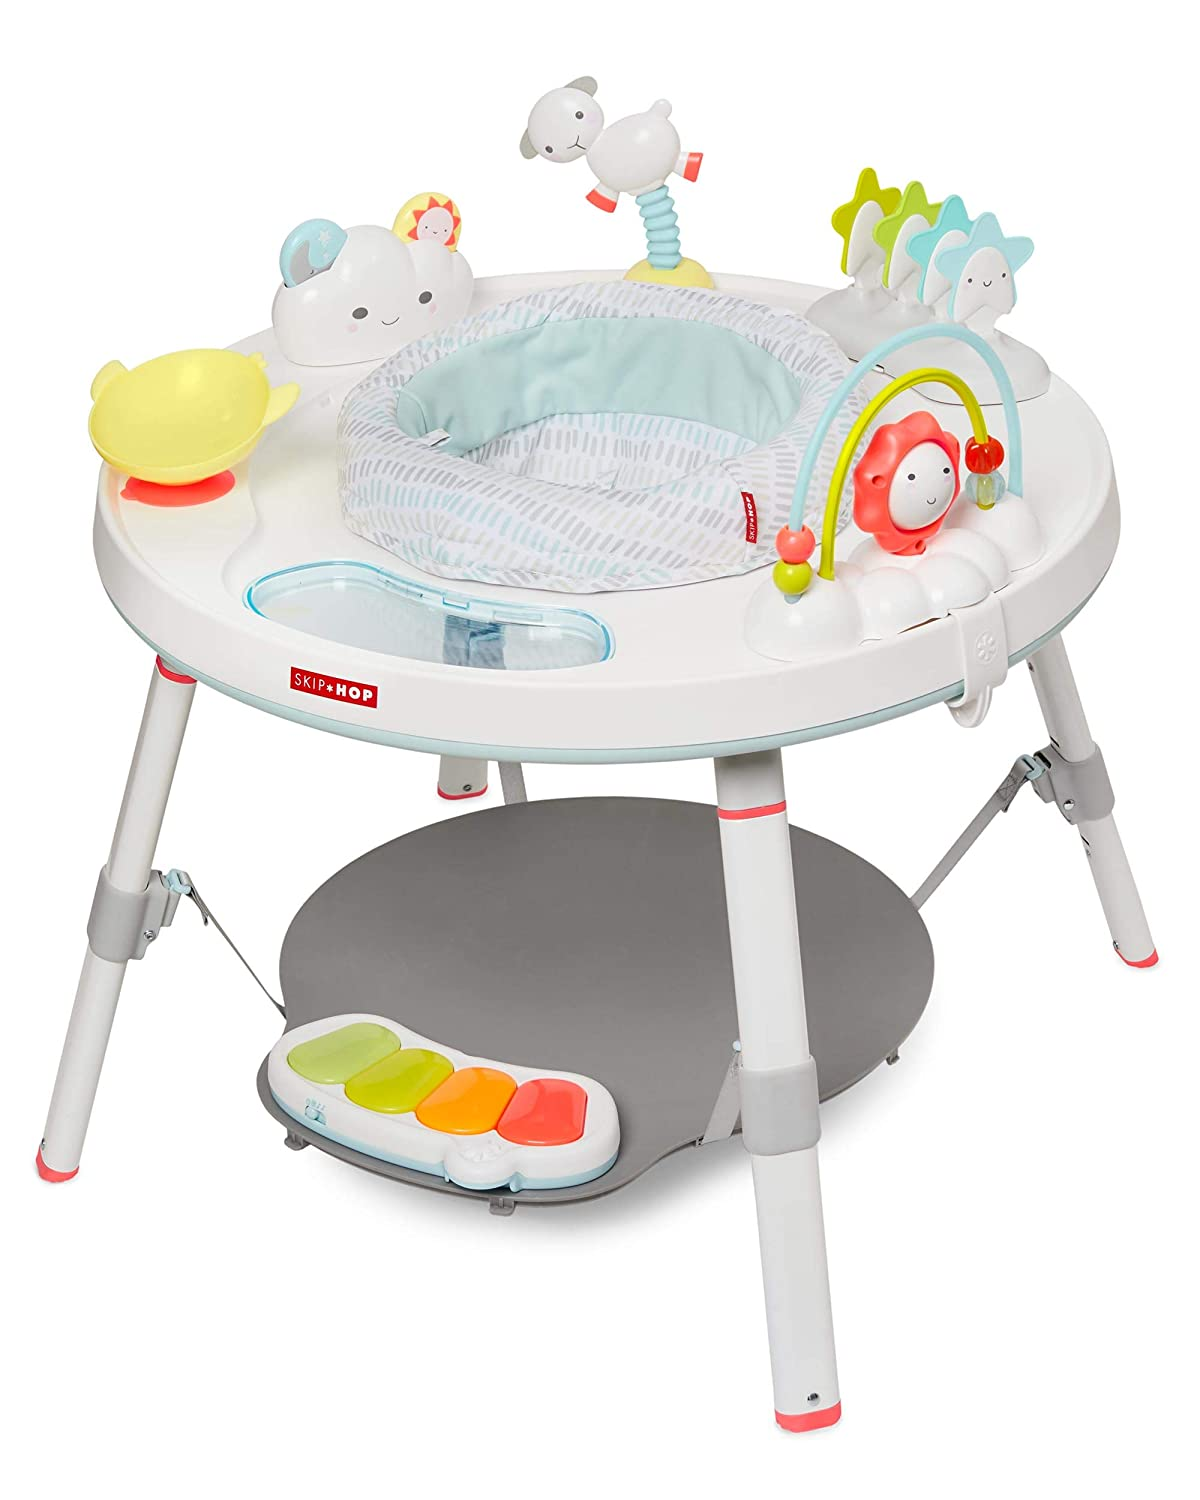 Skip Hop Baby Activity Center: Low price with 3-St sold out Play Interactive Center